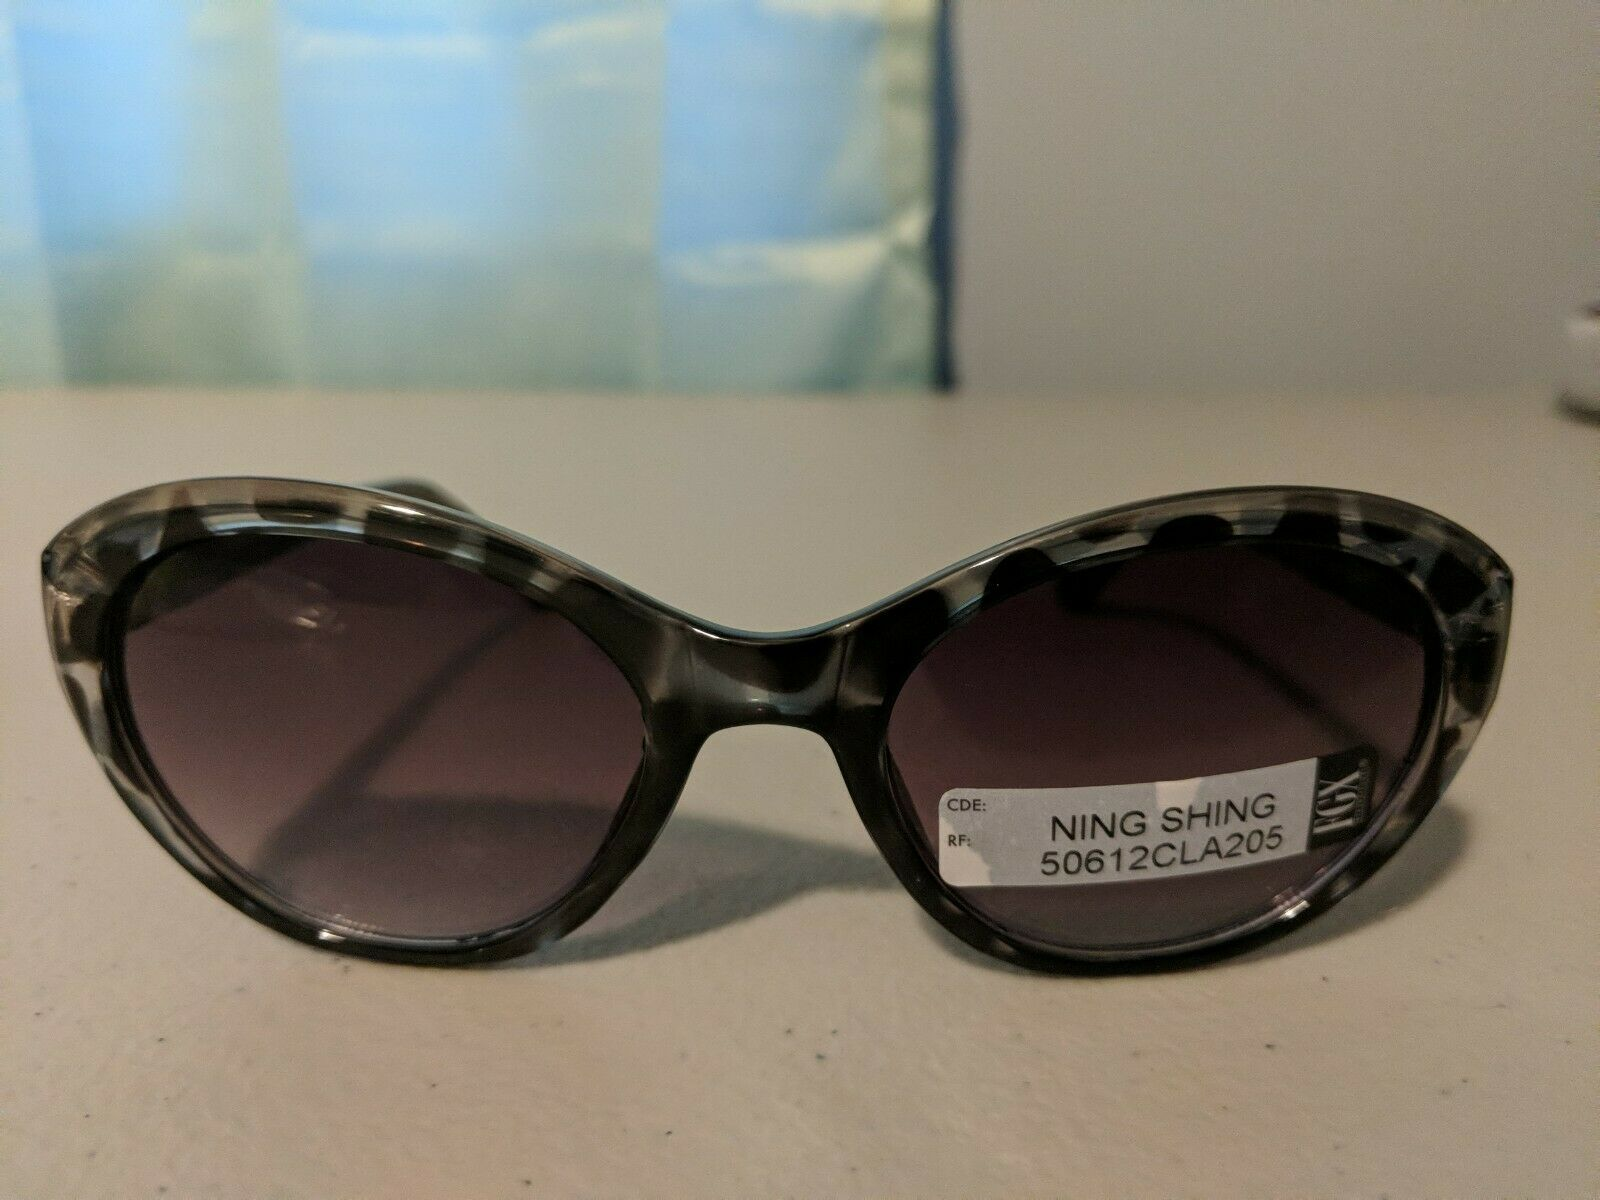 Fgx Women Sunglasses #76   Brand New   Black and Grey Multicolor Frame